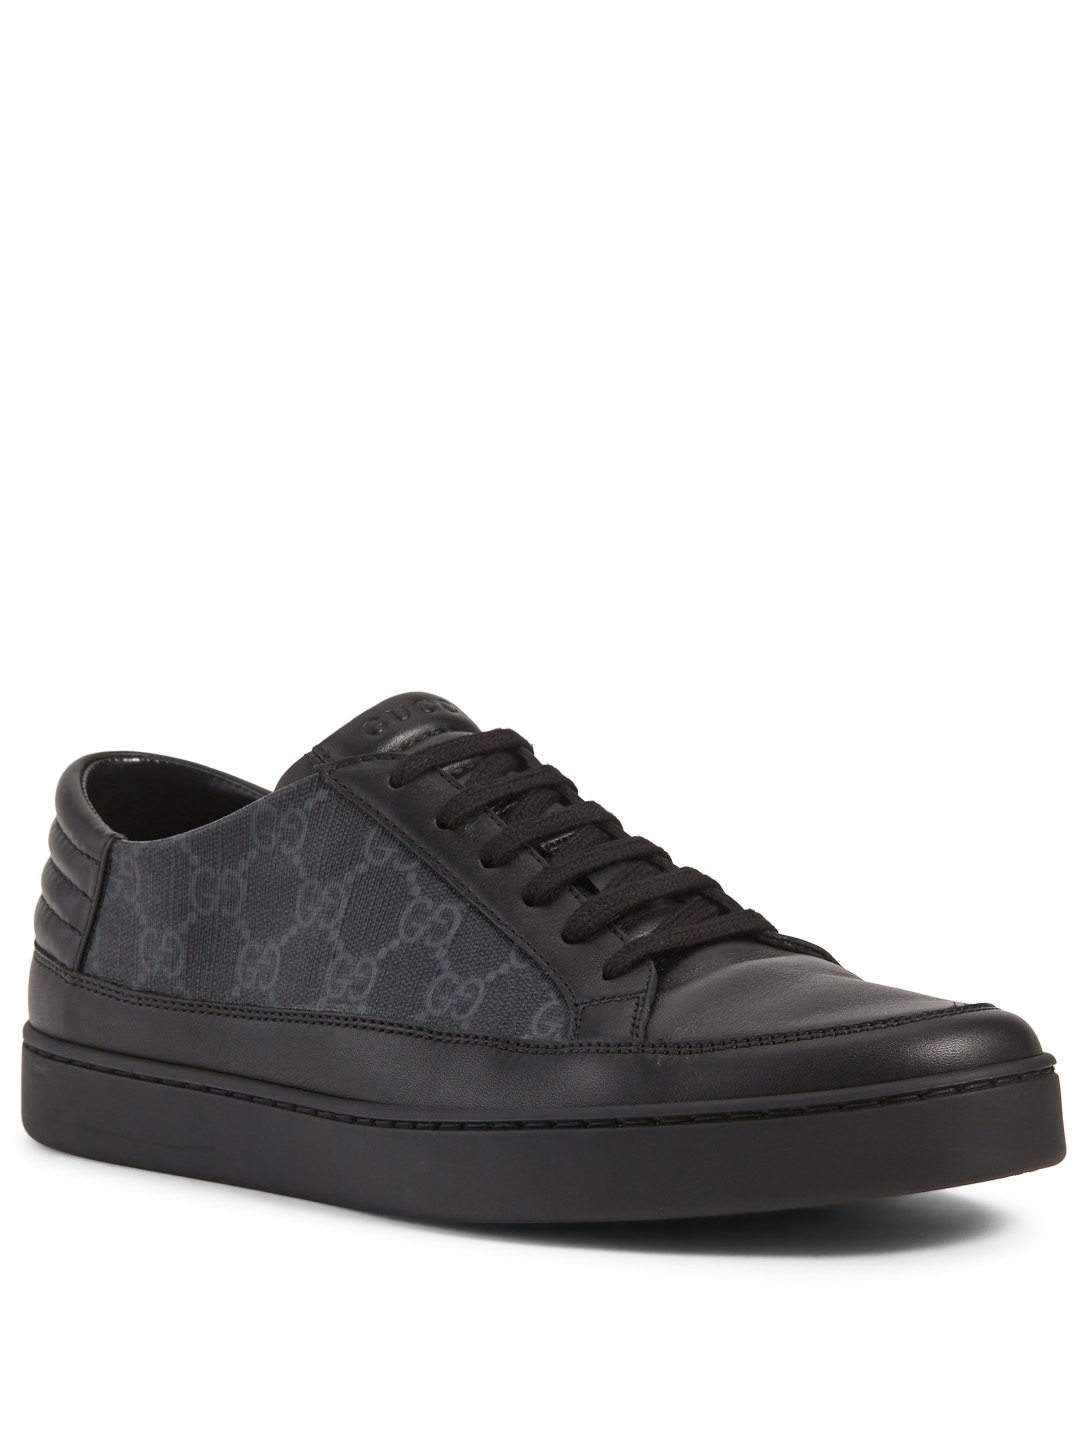 5c43ea914a3 GG Supreme Sneakers | Low-Top Sneakers | Holt Renfrew